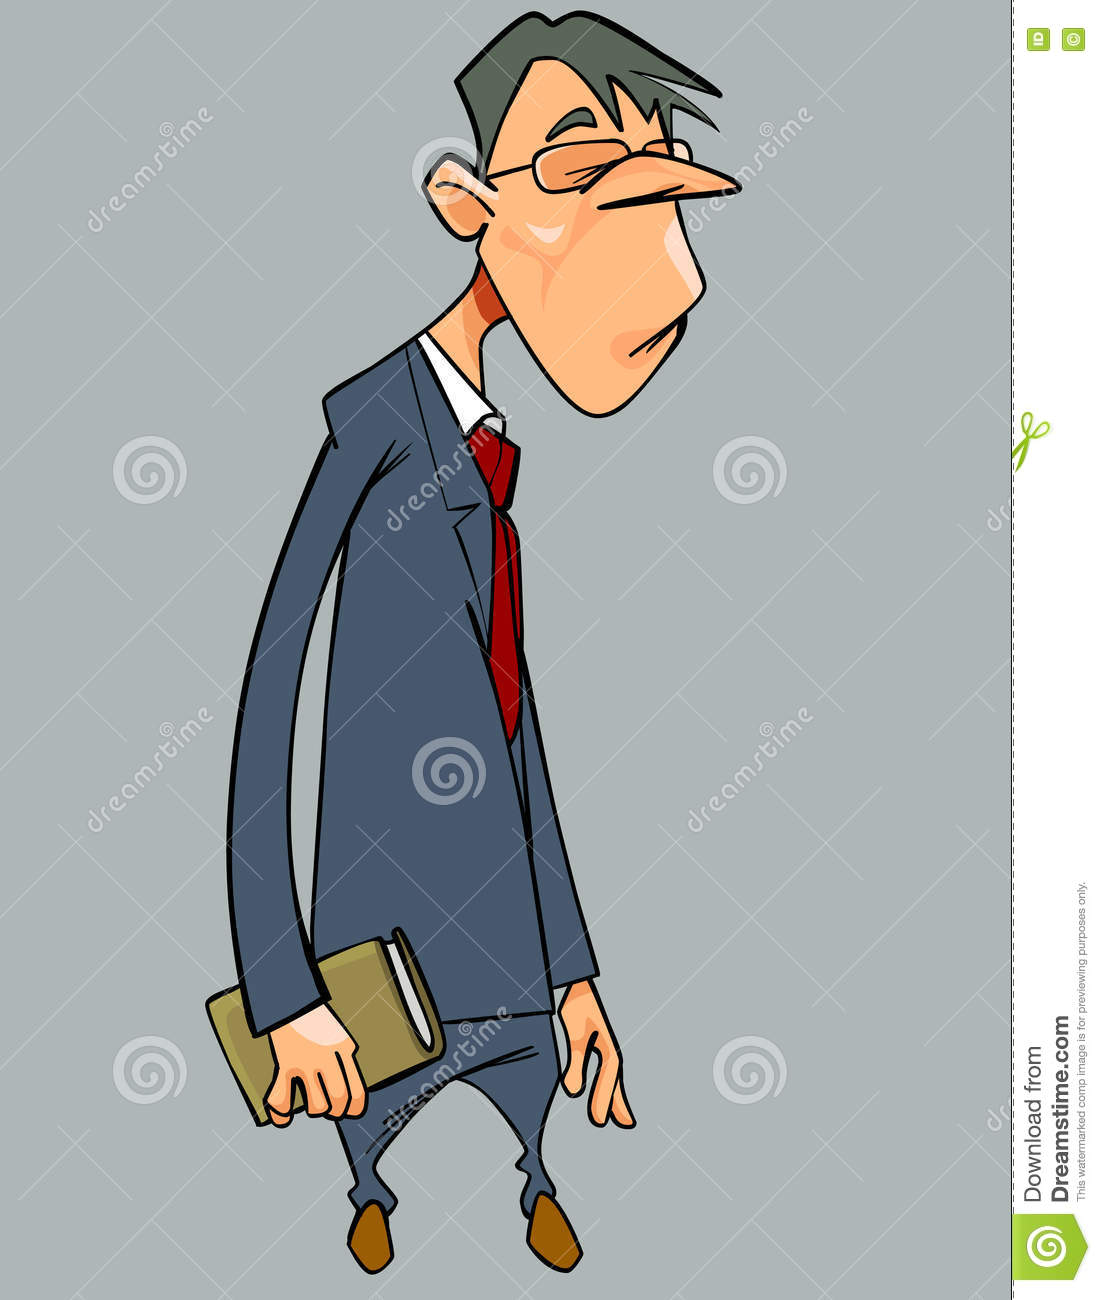 Cartoon Cheerless Man In Suit And Tie With Book In Hand Stock.